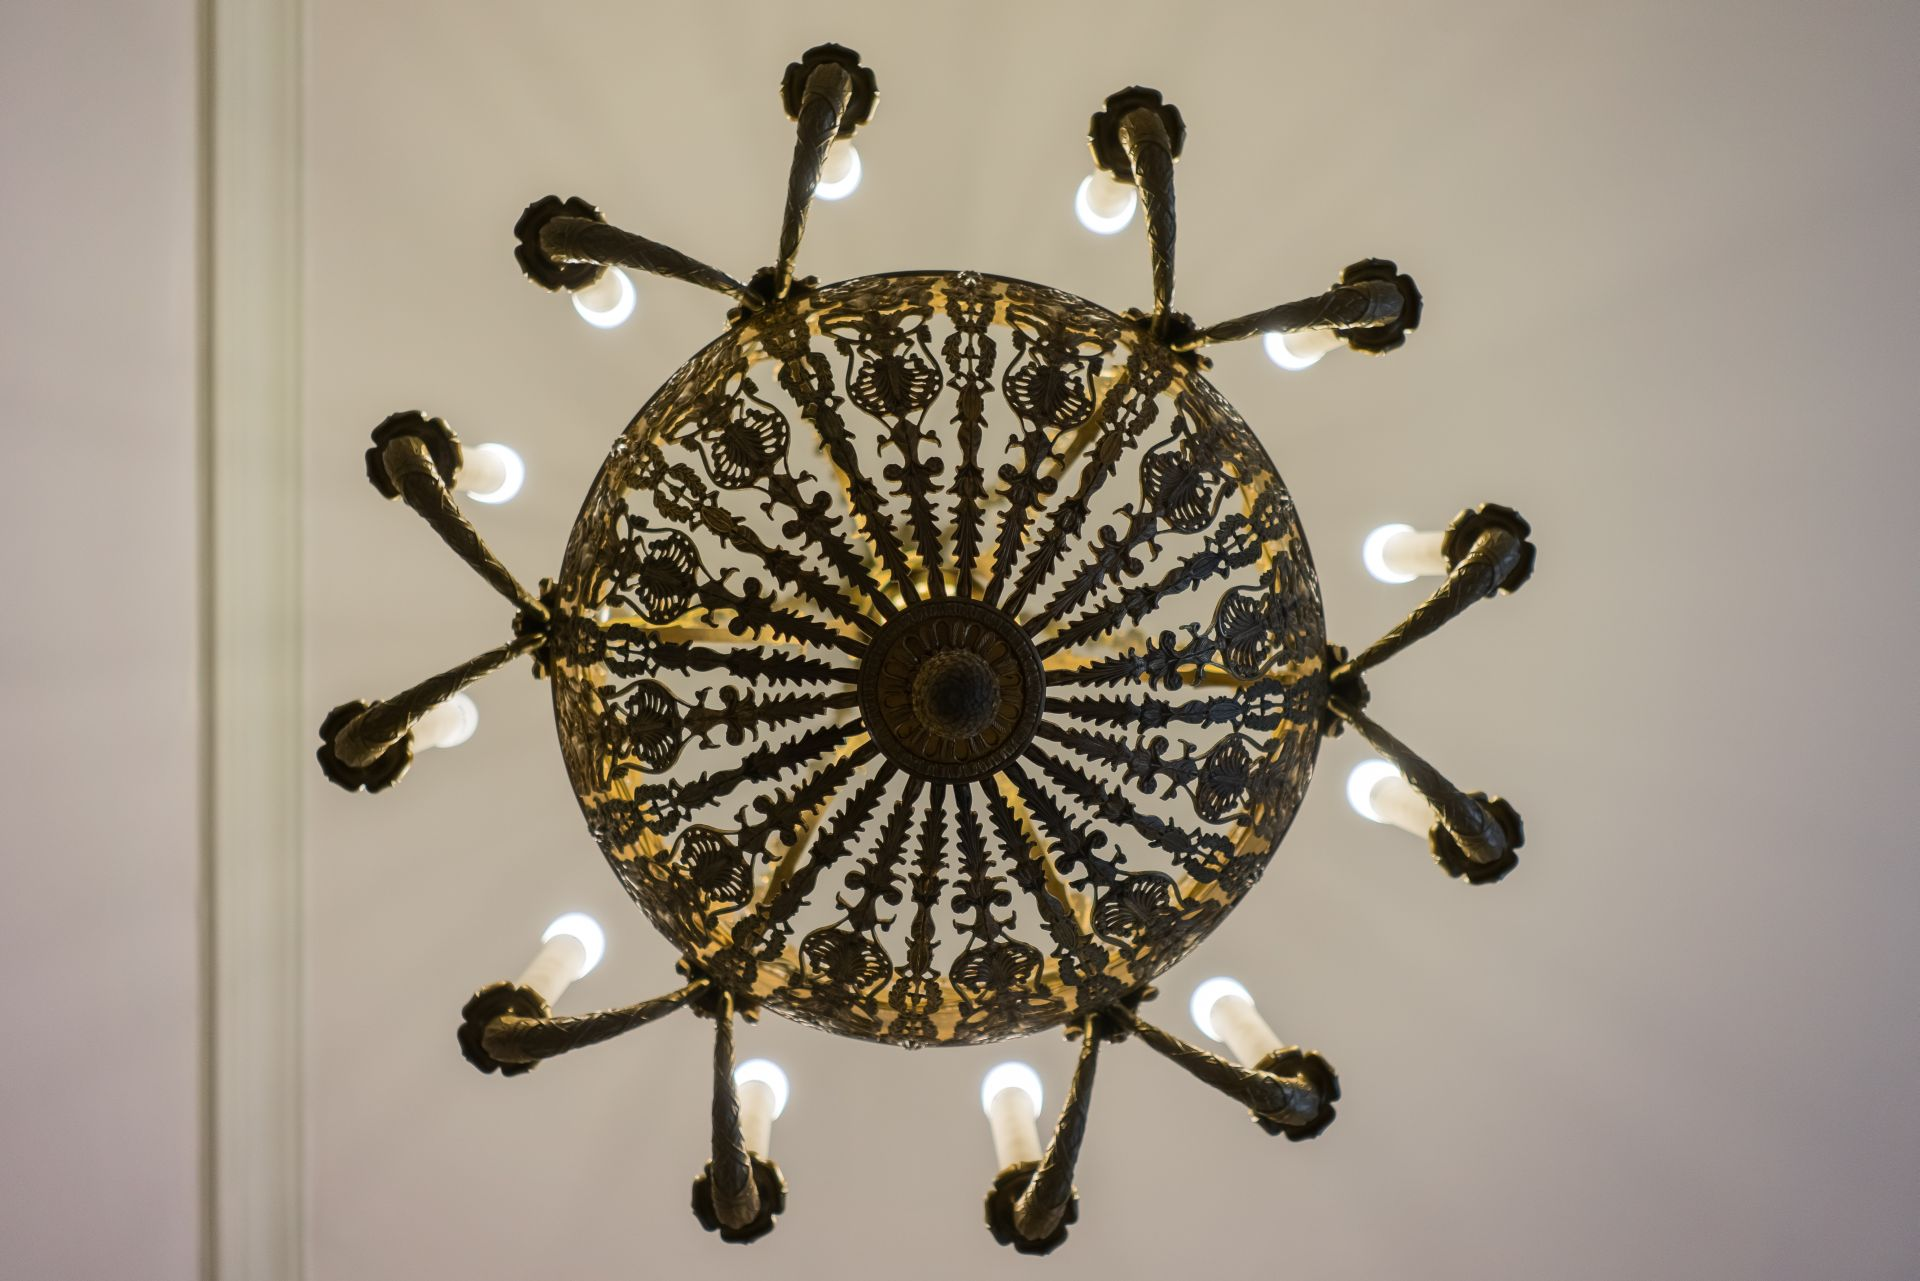 Chandelier, 1800–1829, Archdiocese of Vilnius. Photo by Povilas Jarmala, 2017